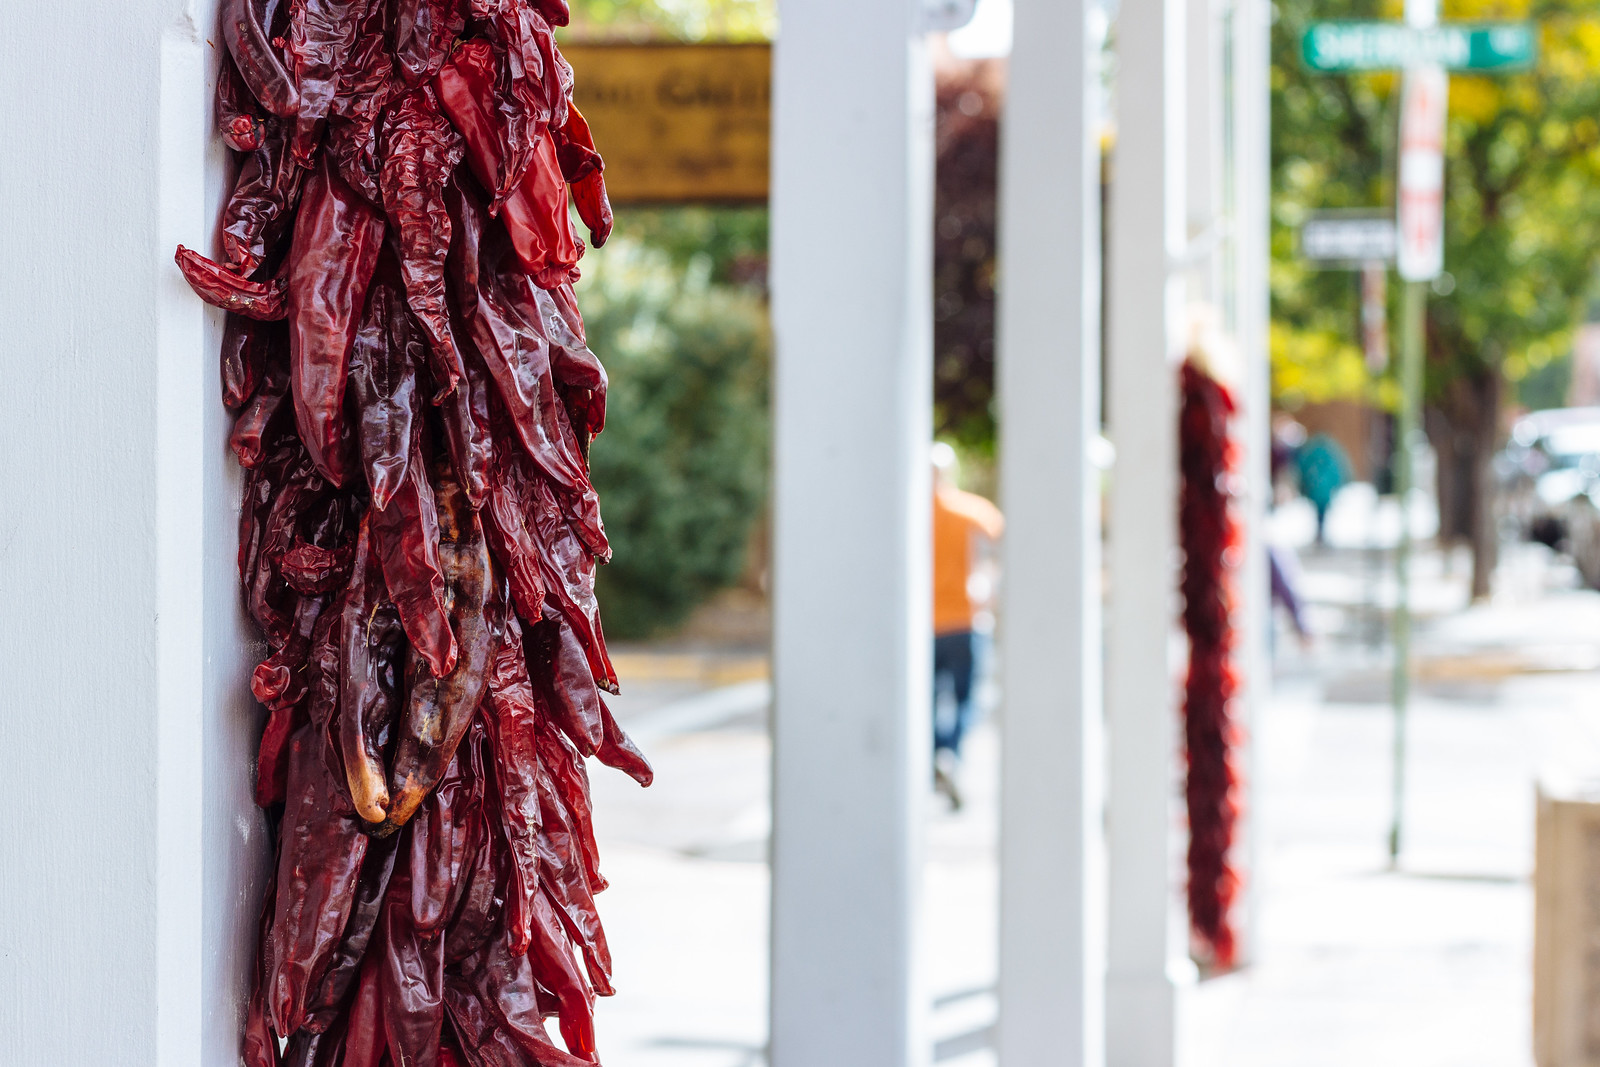 Hanging bunches of red chile peppers in Santa Fe, New Mexico